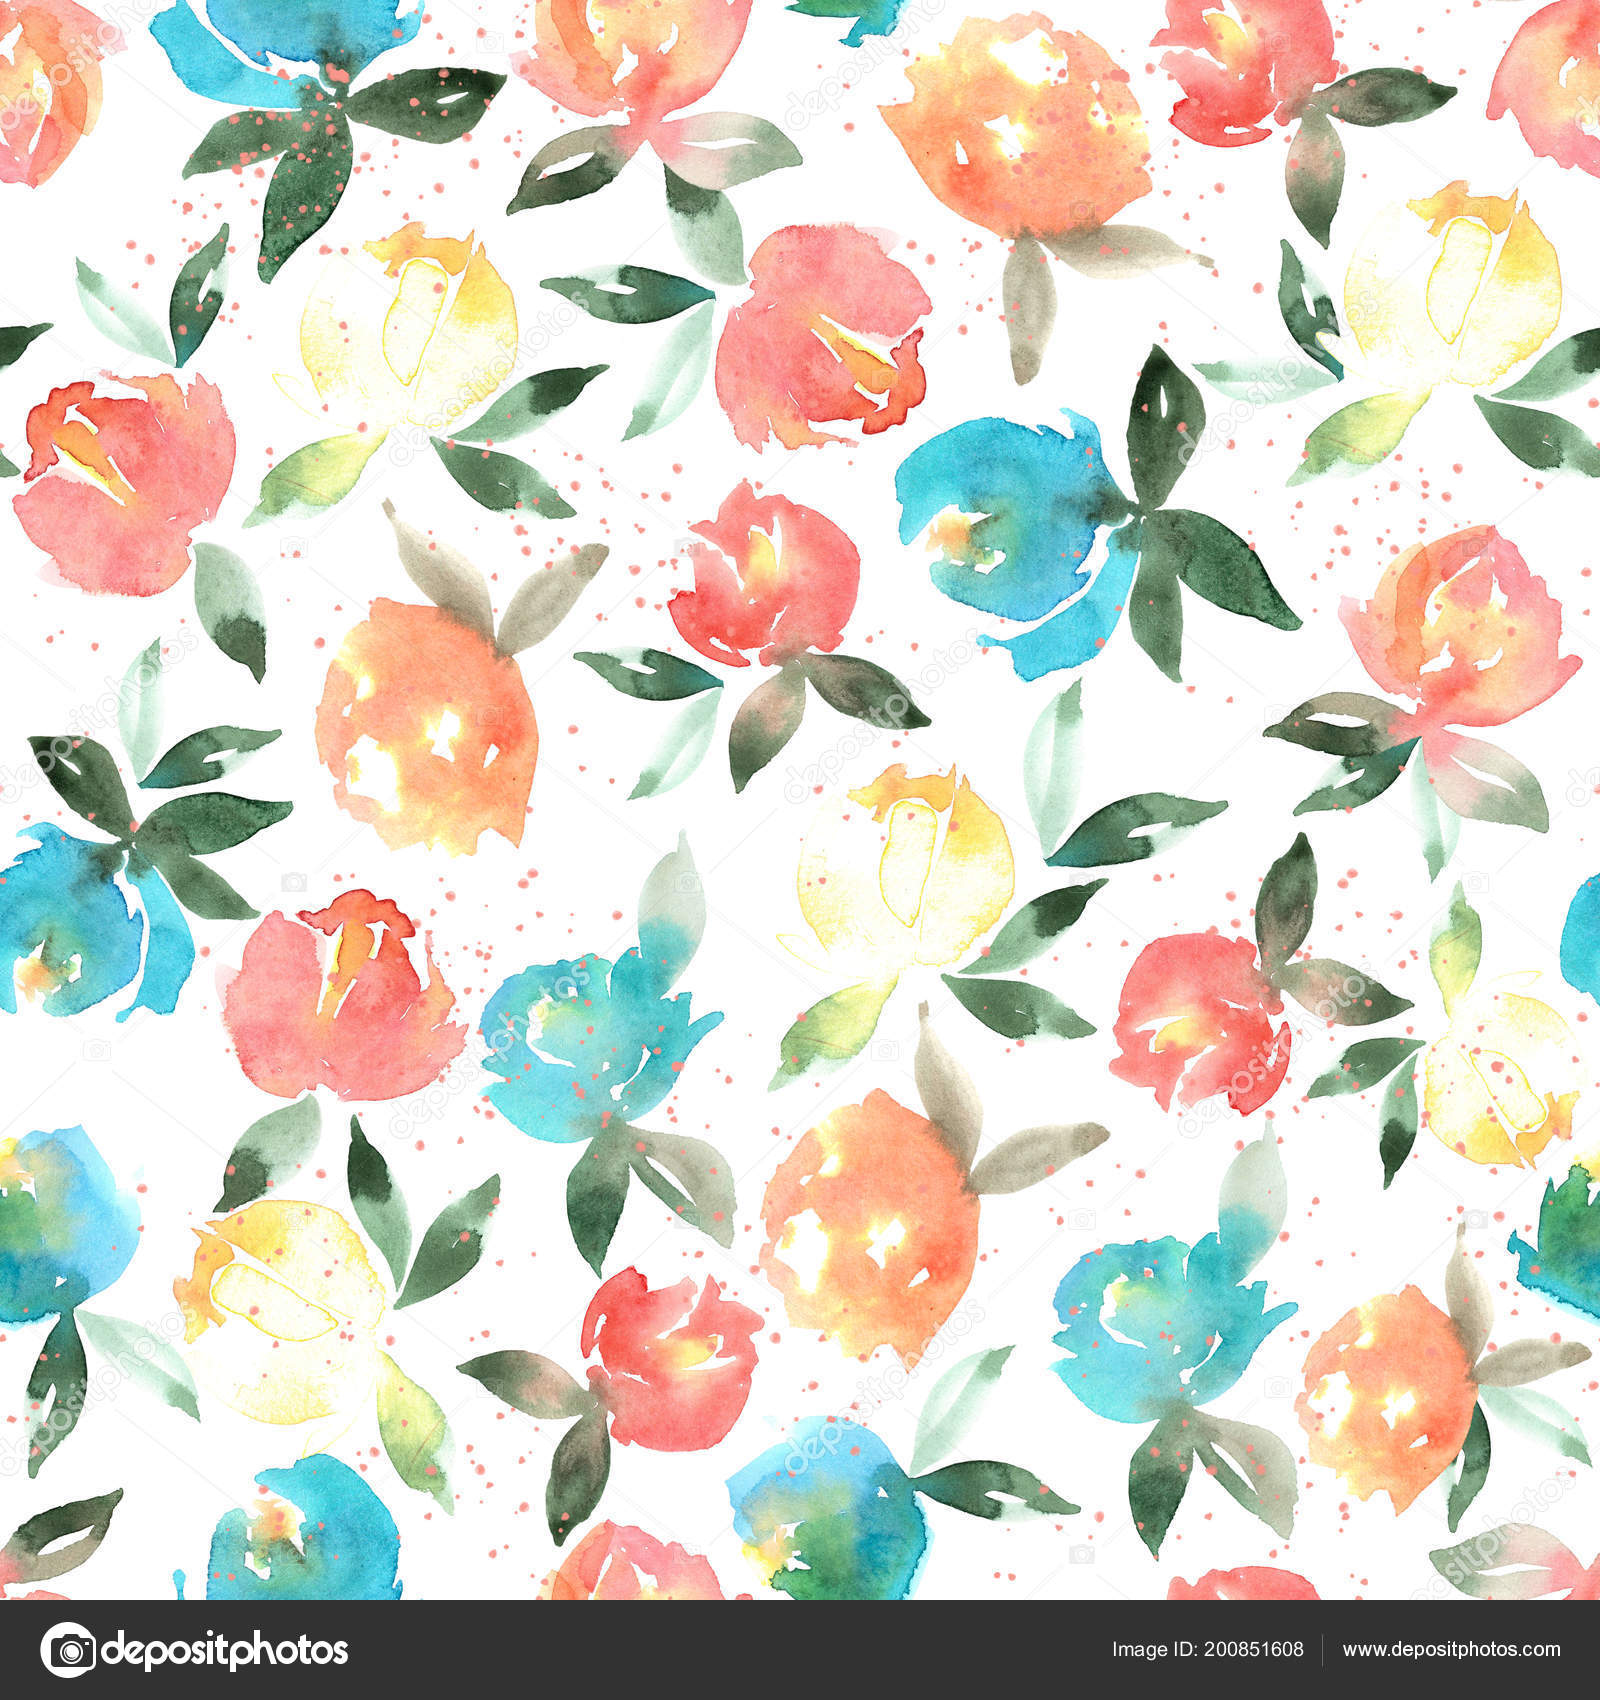 Watercolor Flowers Seamless Watercolor Floral Pattern For Textiles, Wrapping Paper,